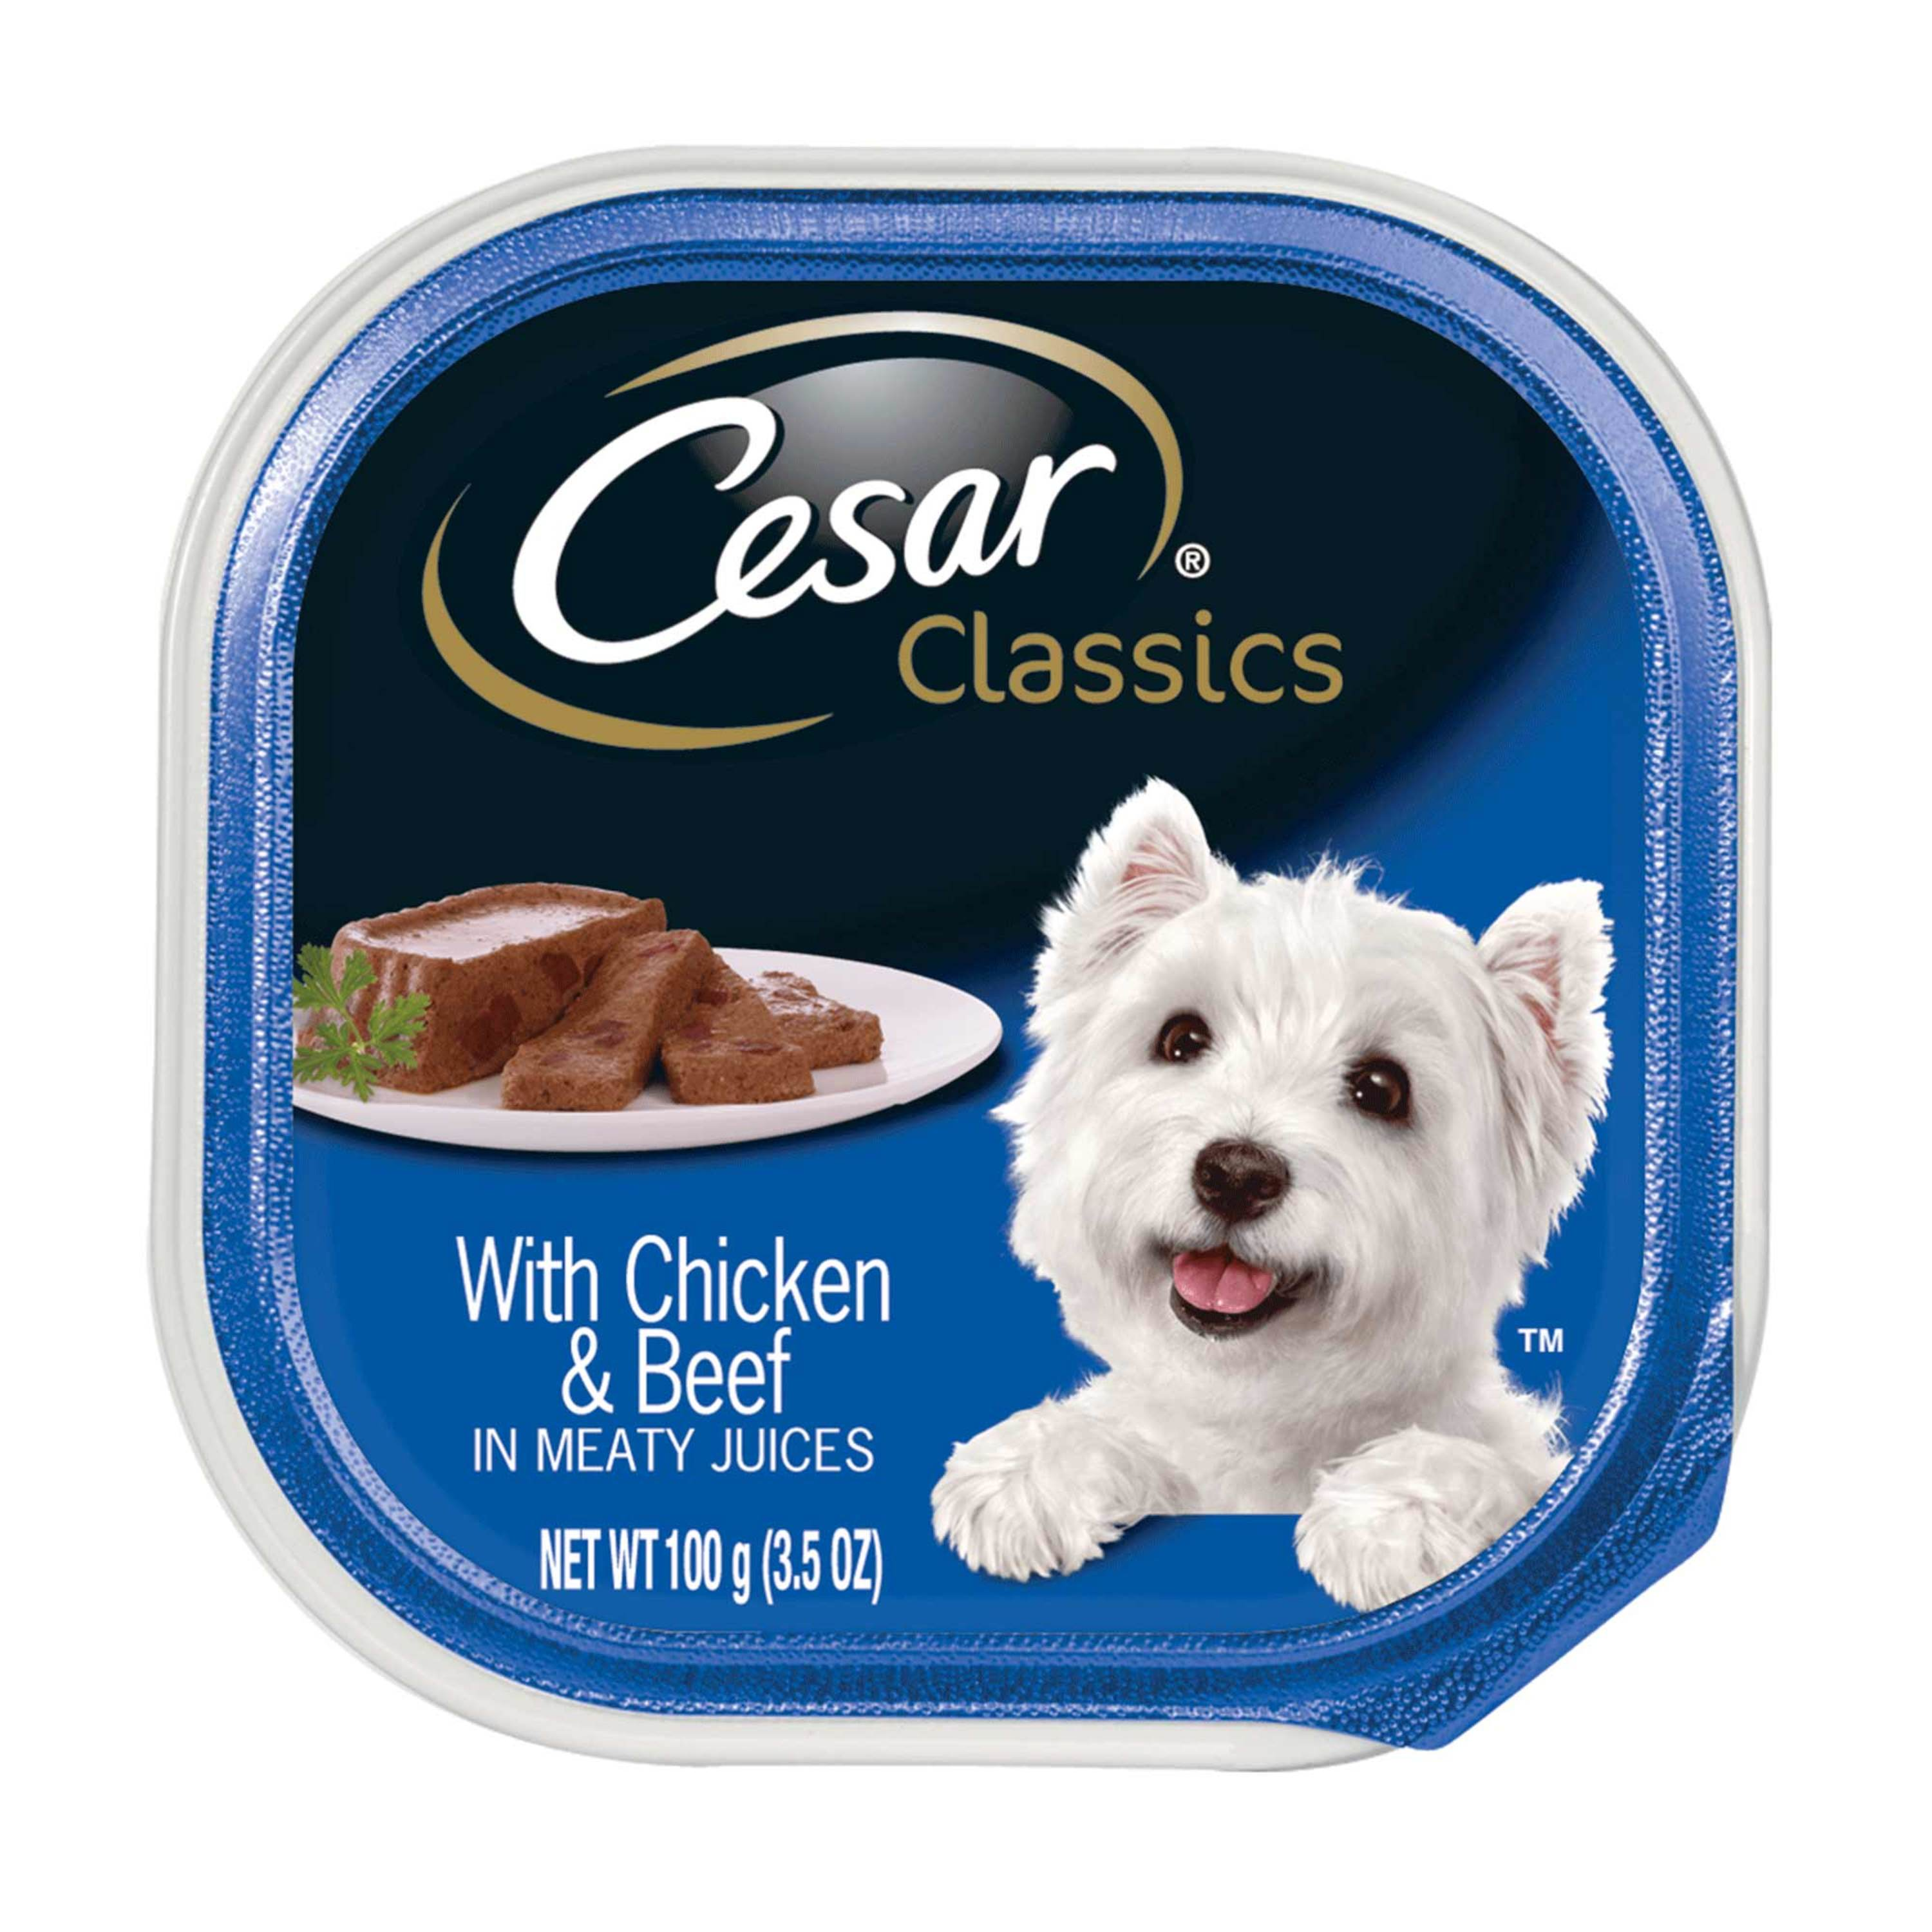 CESAR Canine Cuisine With Chicken and Beef Dog Food Tray 3.5 Ounces